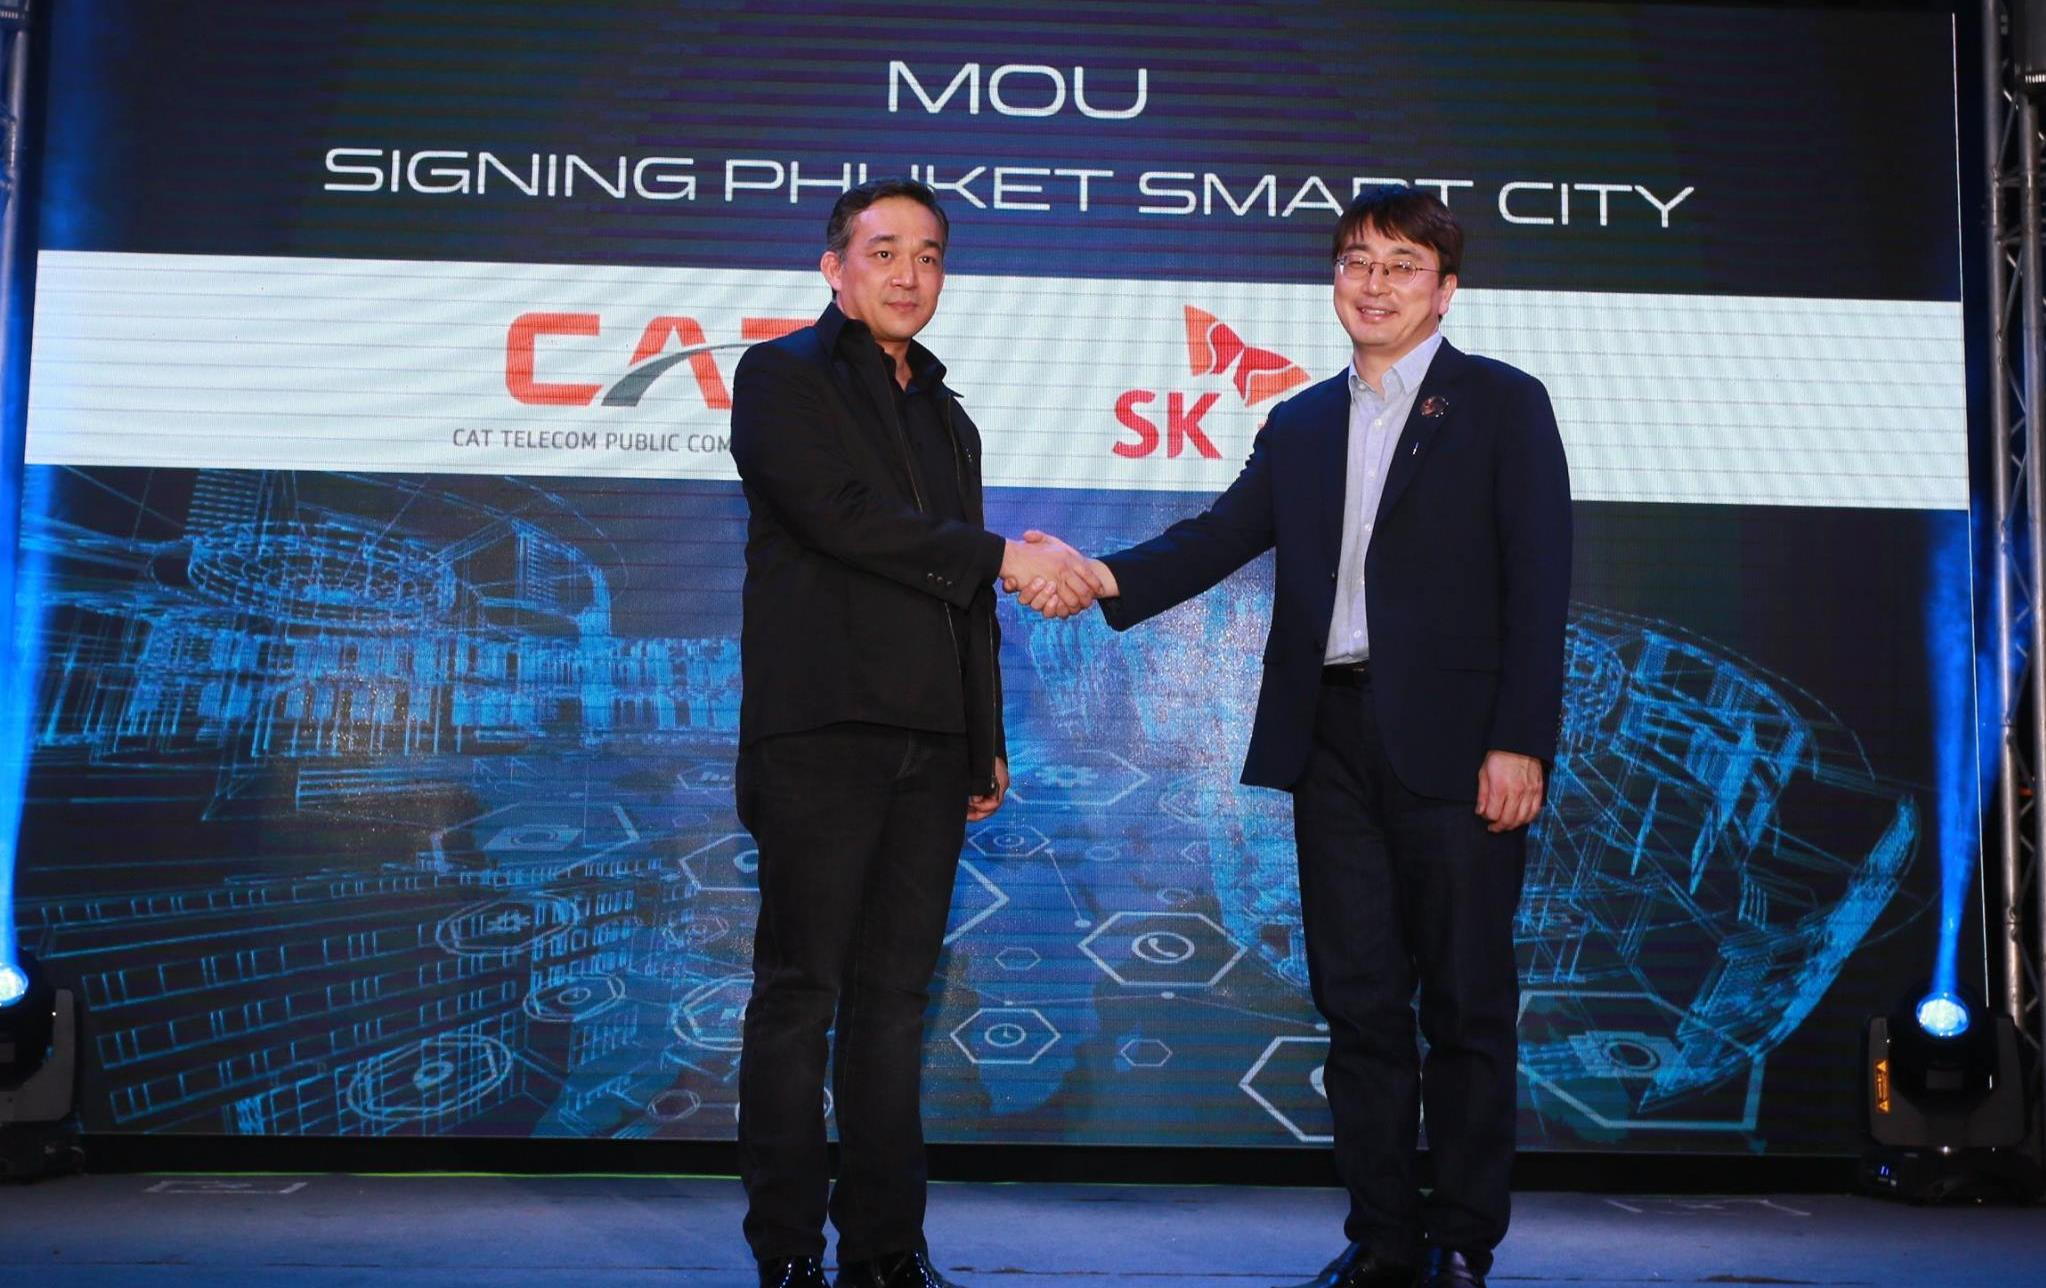 CAT steps into the new S-Curve, partnering with two leading South Korea companies, launches 'Tree Pay' Total solution Payment Gateway and 'Phuket Smart City' mega project, the first LoRa IoT Network in ASEAN.